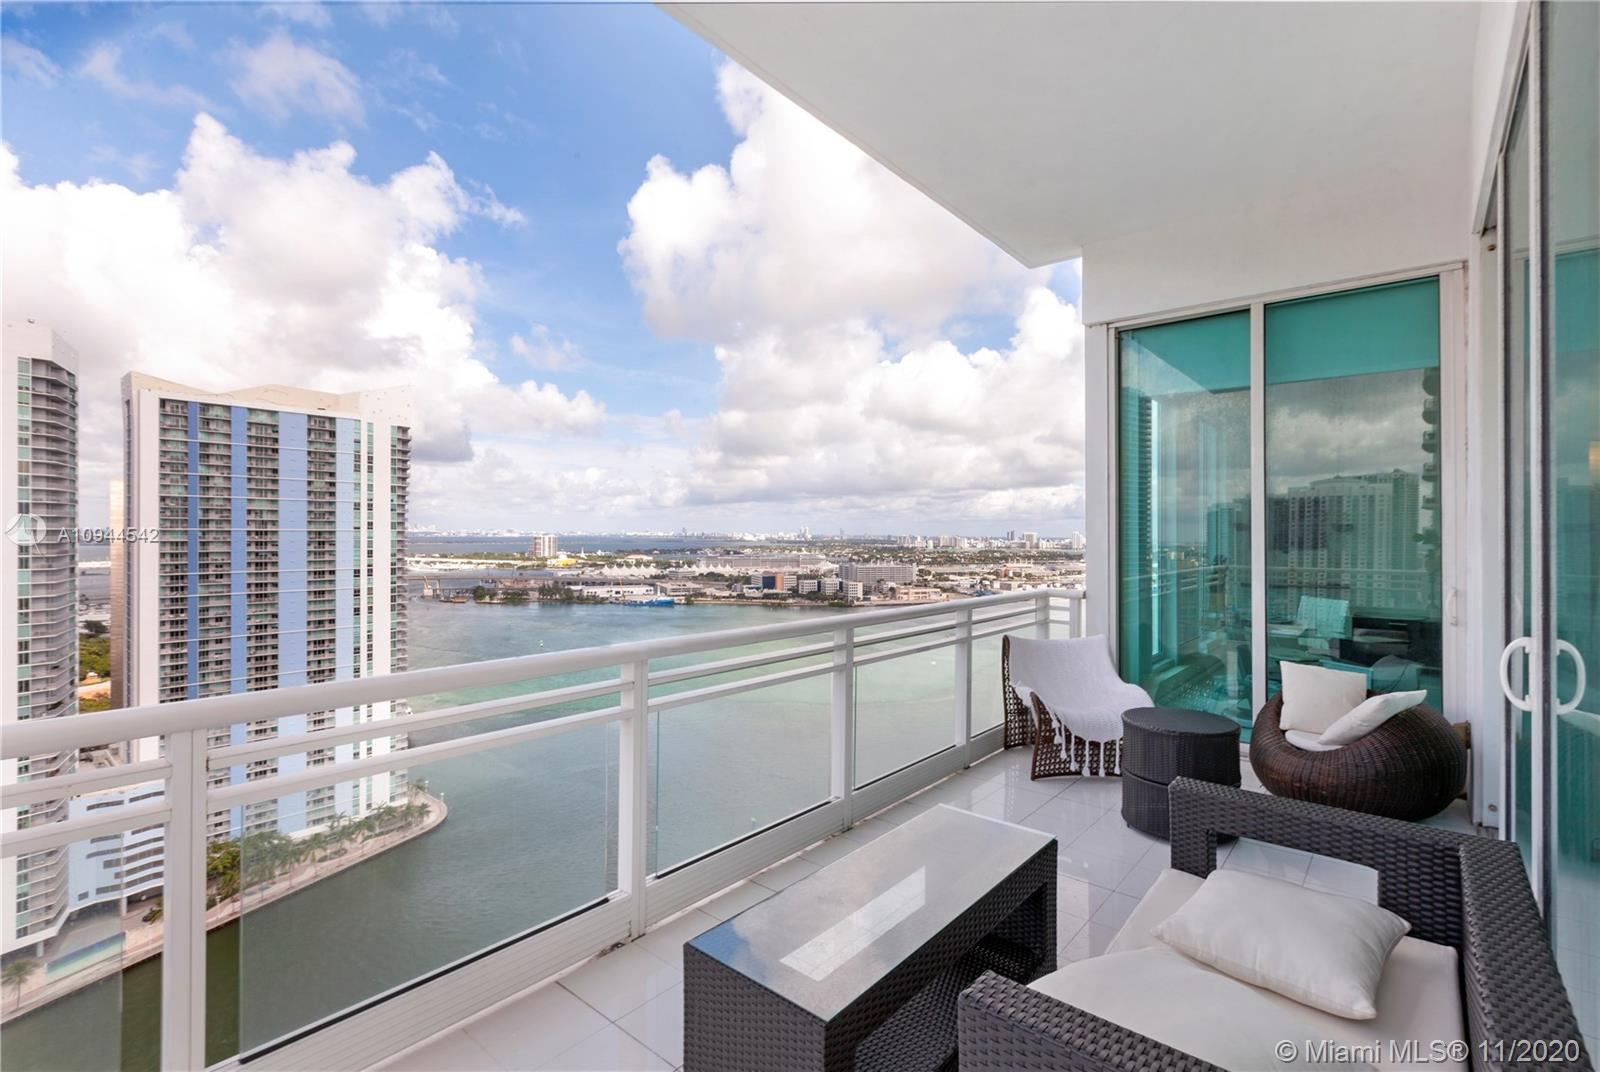 Spectacular views furnished turnkey unit at ASIA condo in Brickell key. Three bedroom & 3.5 bath corner unit with breathtaking water views in the most luxurious and exclusive building. Private elevator, 12'-foot ceilings, marble floors throughout, top of the line gourmet kitchen appliances (Subzero and Miele). Fabulous amenities such as tennis court, swimming pool, lap pool, gym, sauna, racquetball court, 24hr concierge, valet, and security.